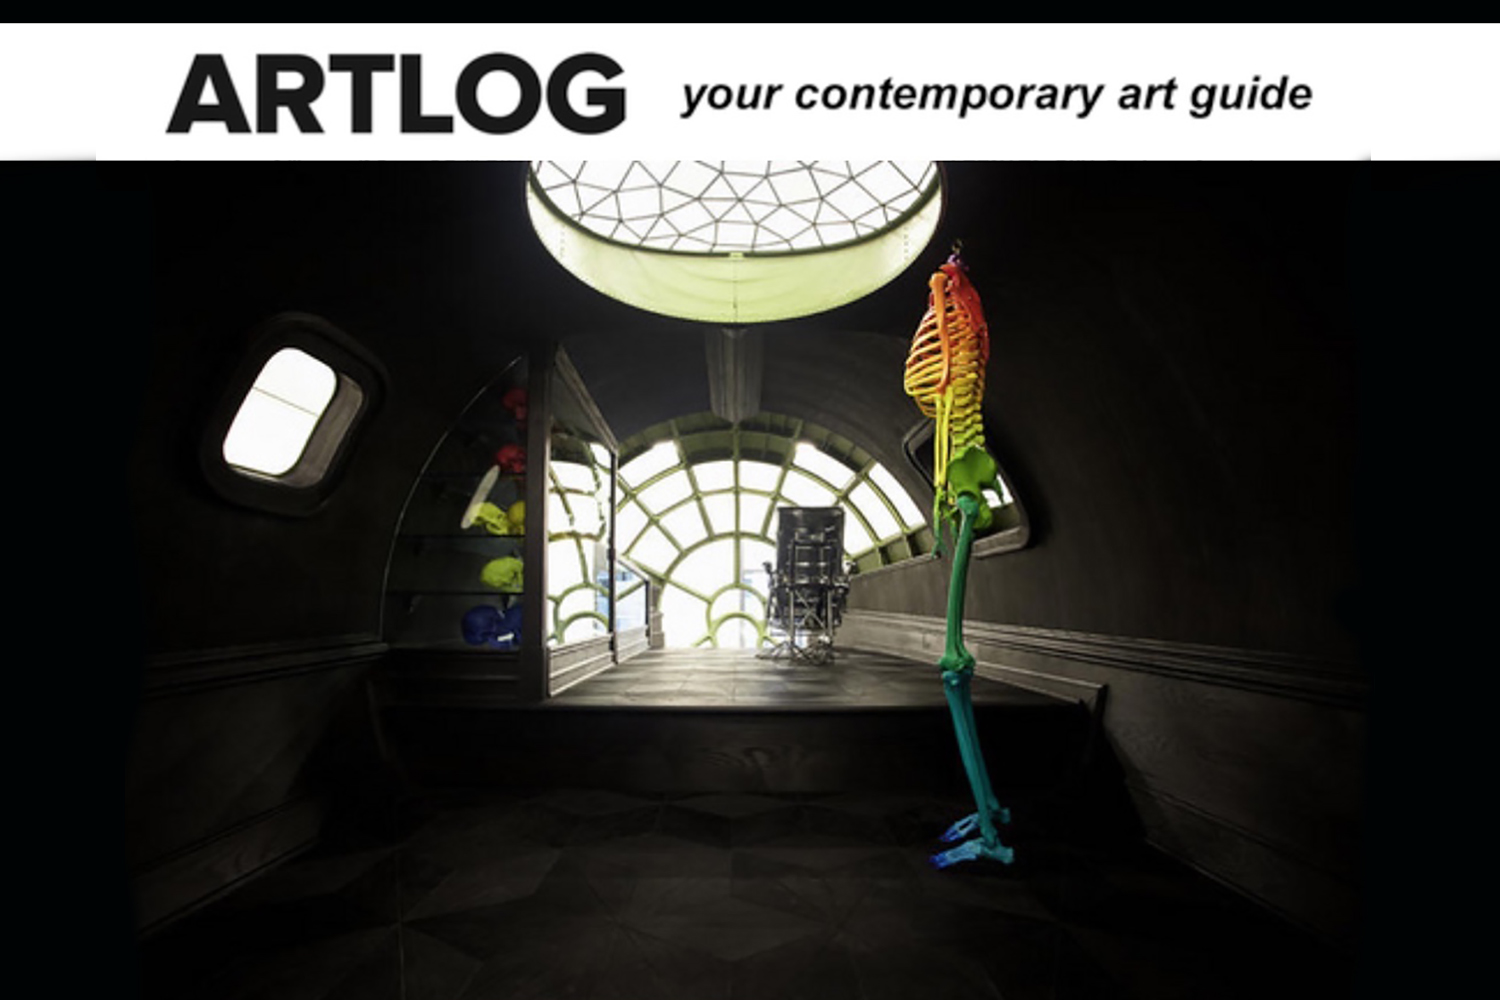 ARTLOG / CONTENT CREATION    Created weekly online editorial and email marketing content for ArtLog, an online media portal -  Where Art Meets Design, Music, & Technology -  established by art-world entrepreneur, Manish Vora.